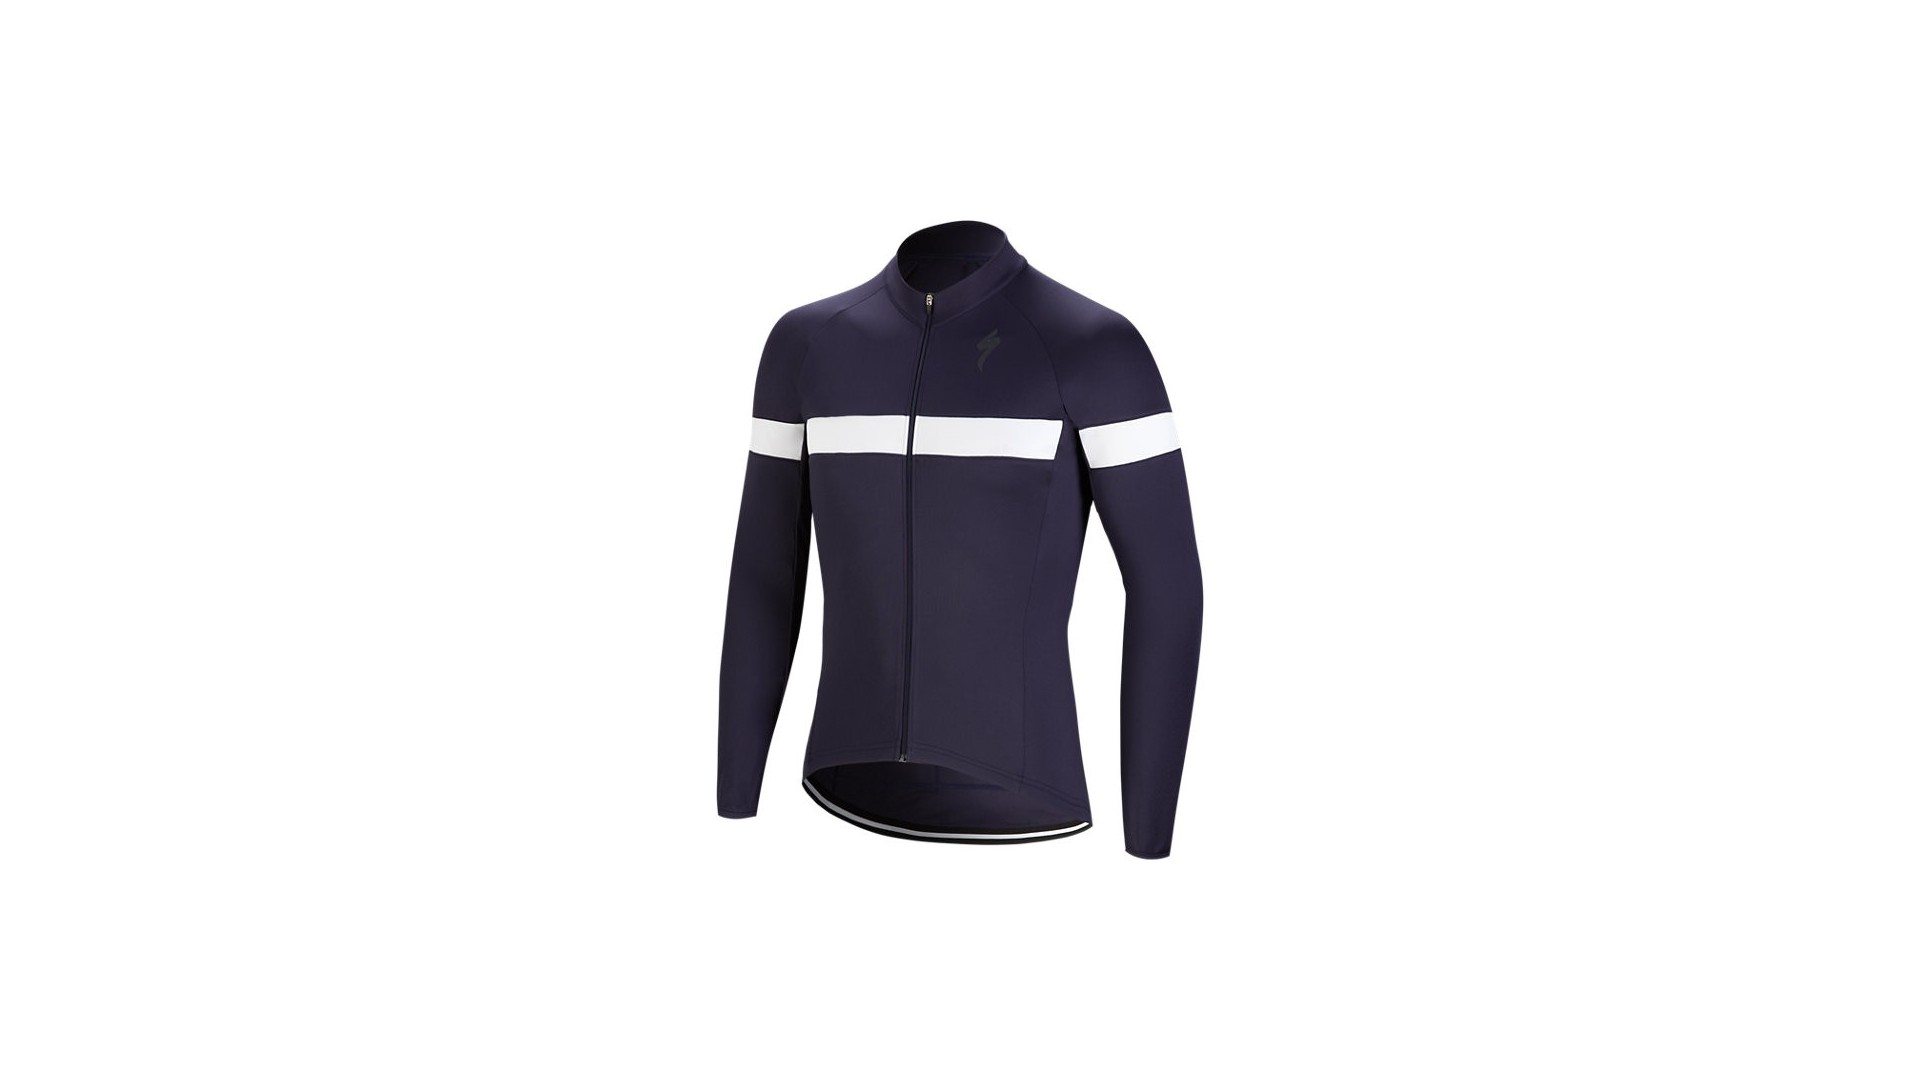 Therminal Rbx Sport Maillot Specialized Azul/Blanco 1 IBKBike.es